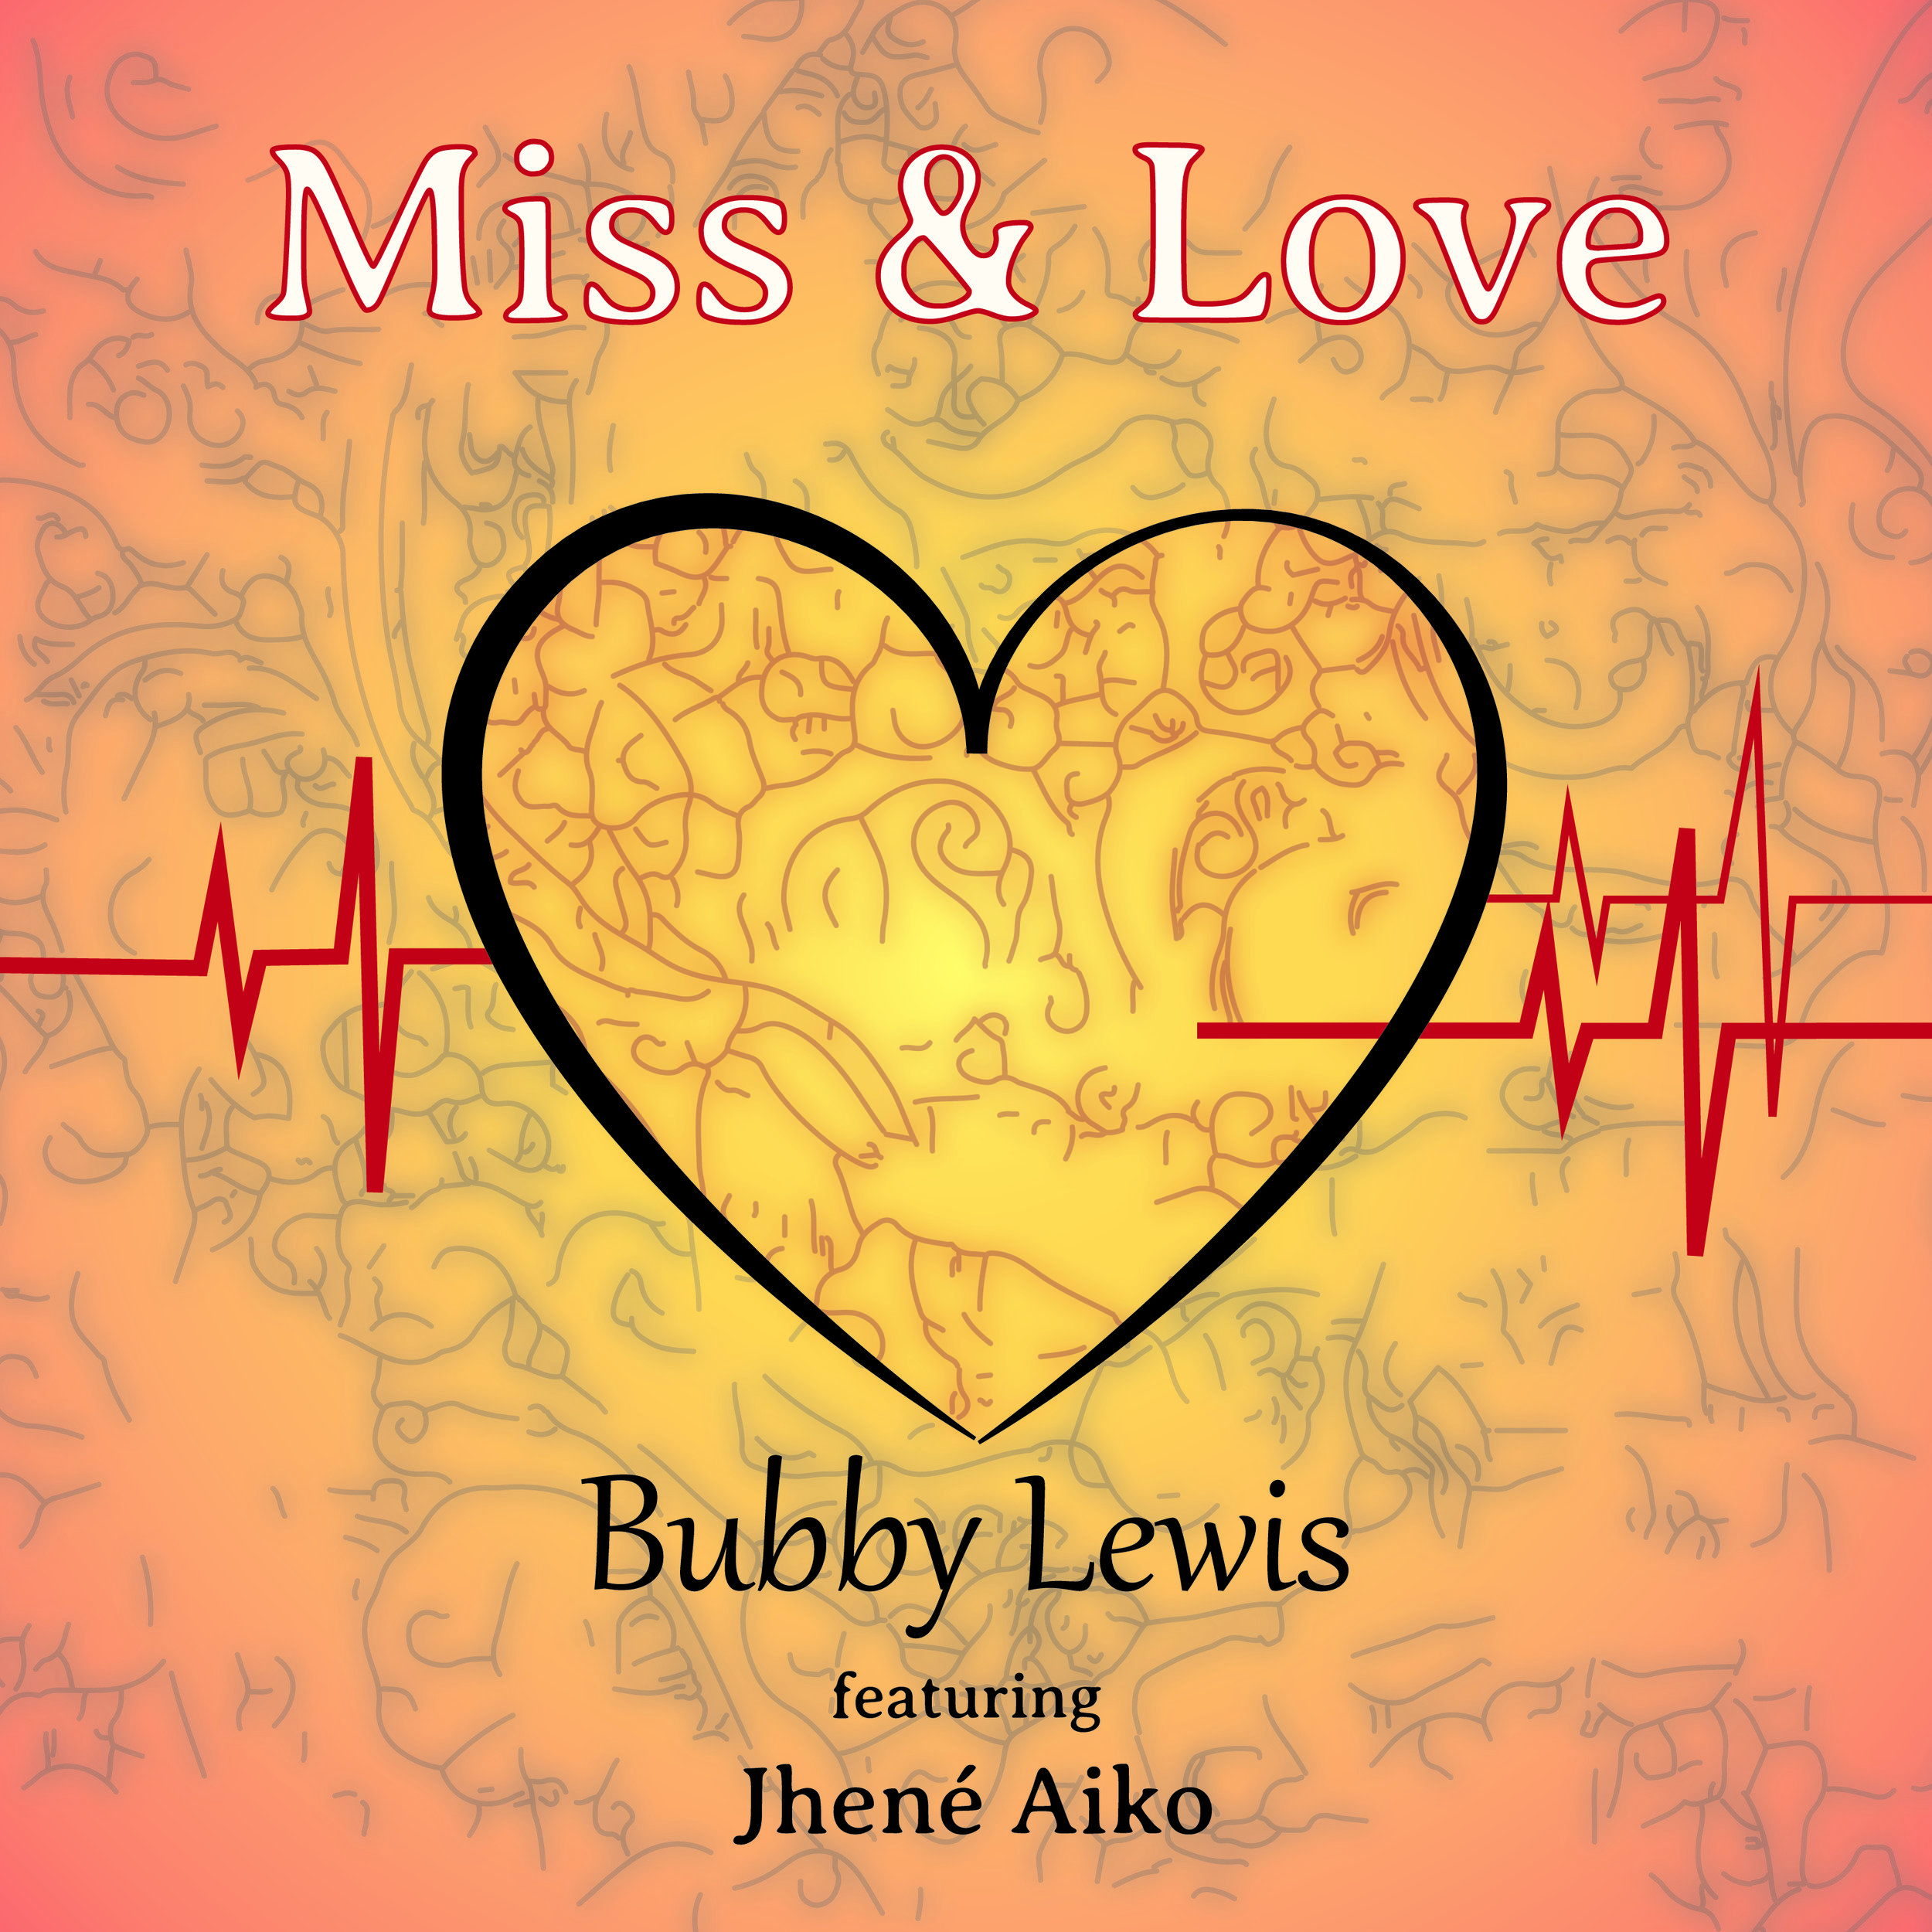 miss & love_cover-01.jpg